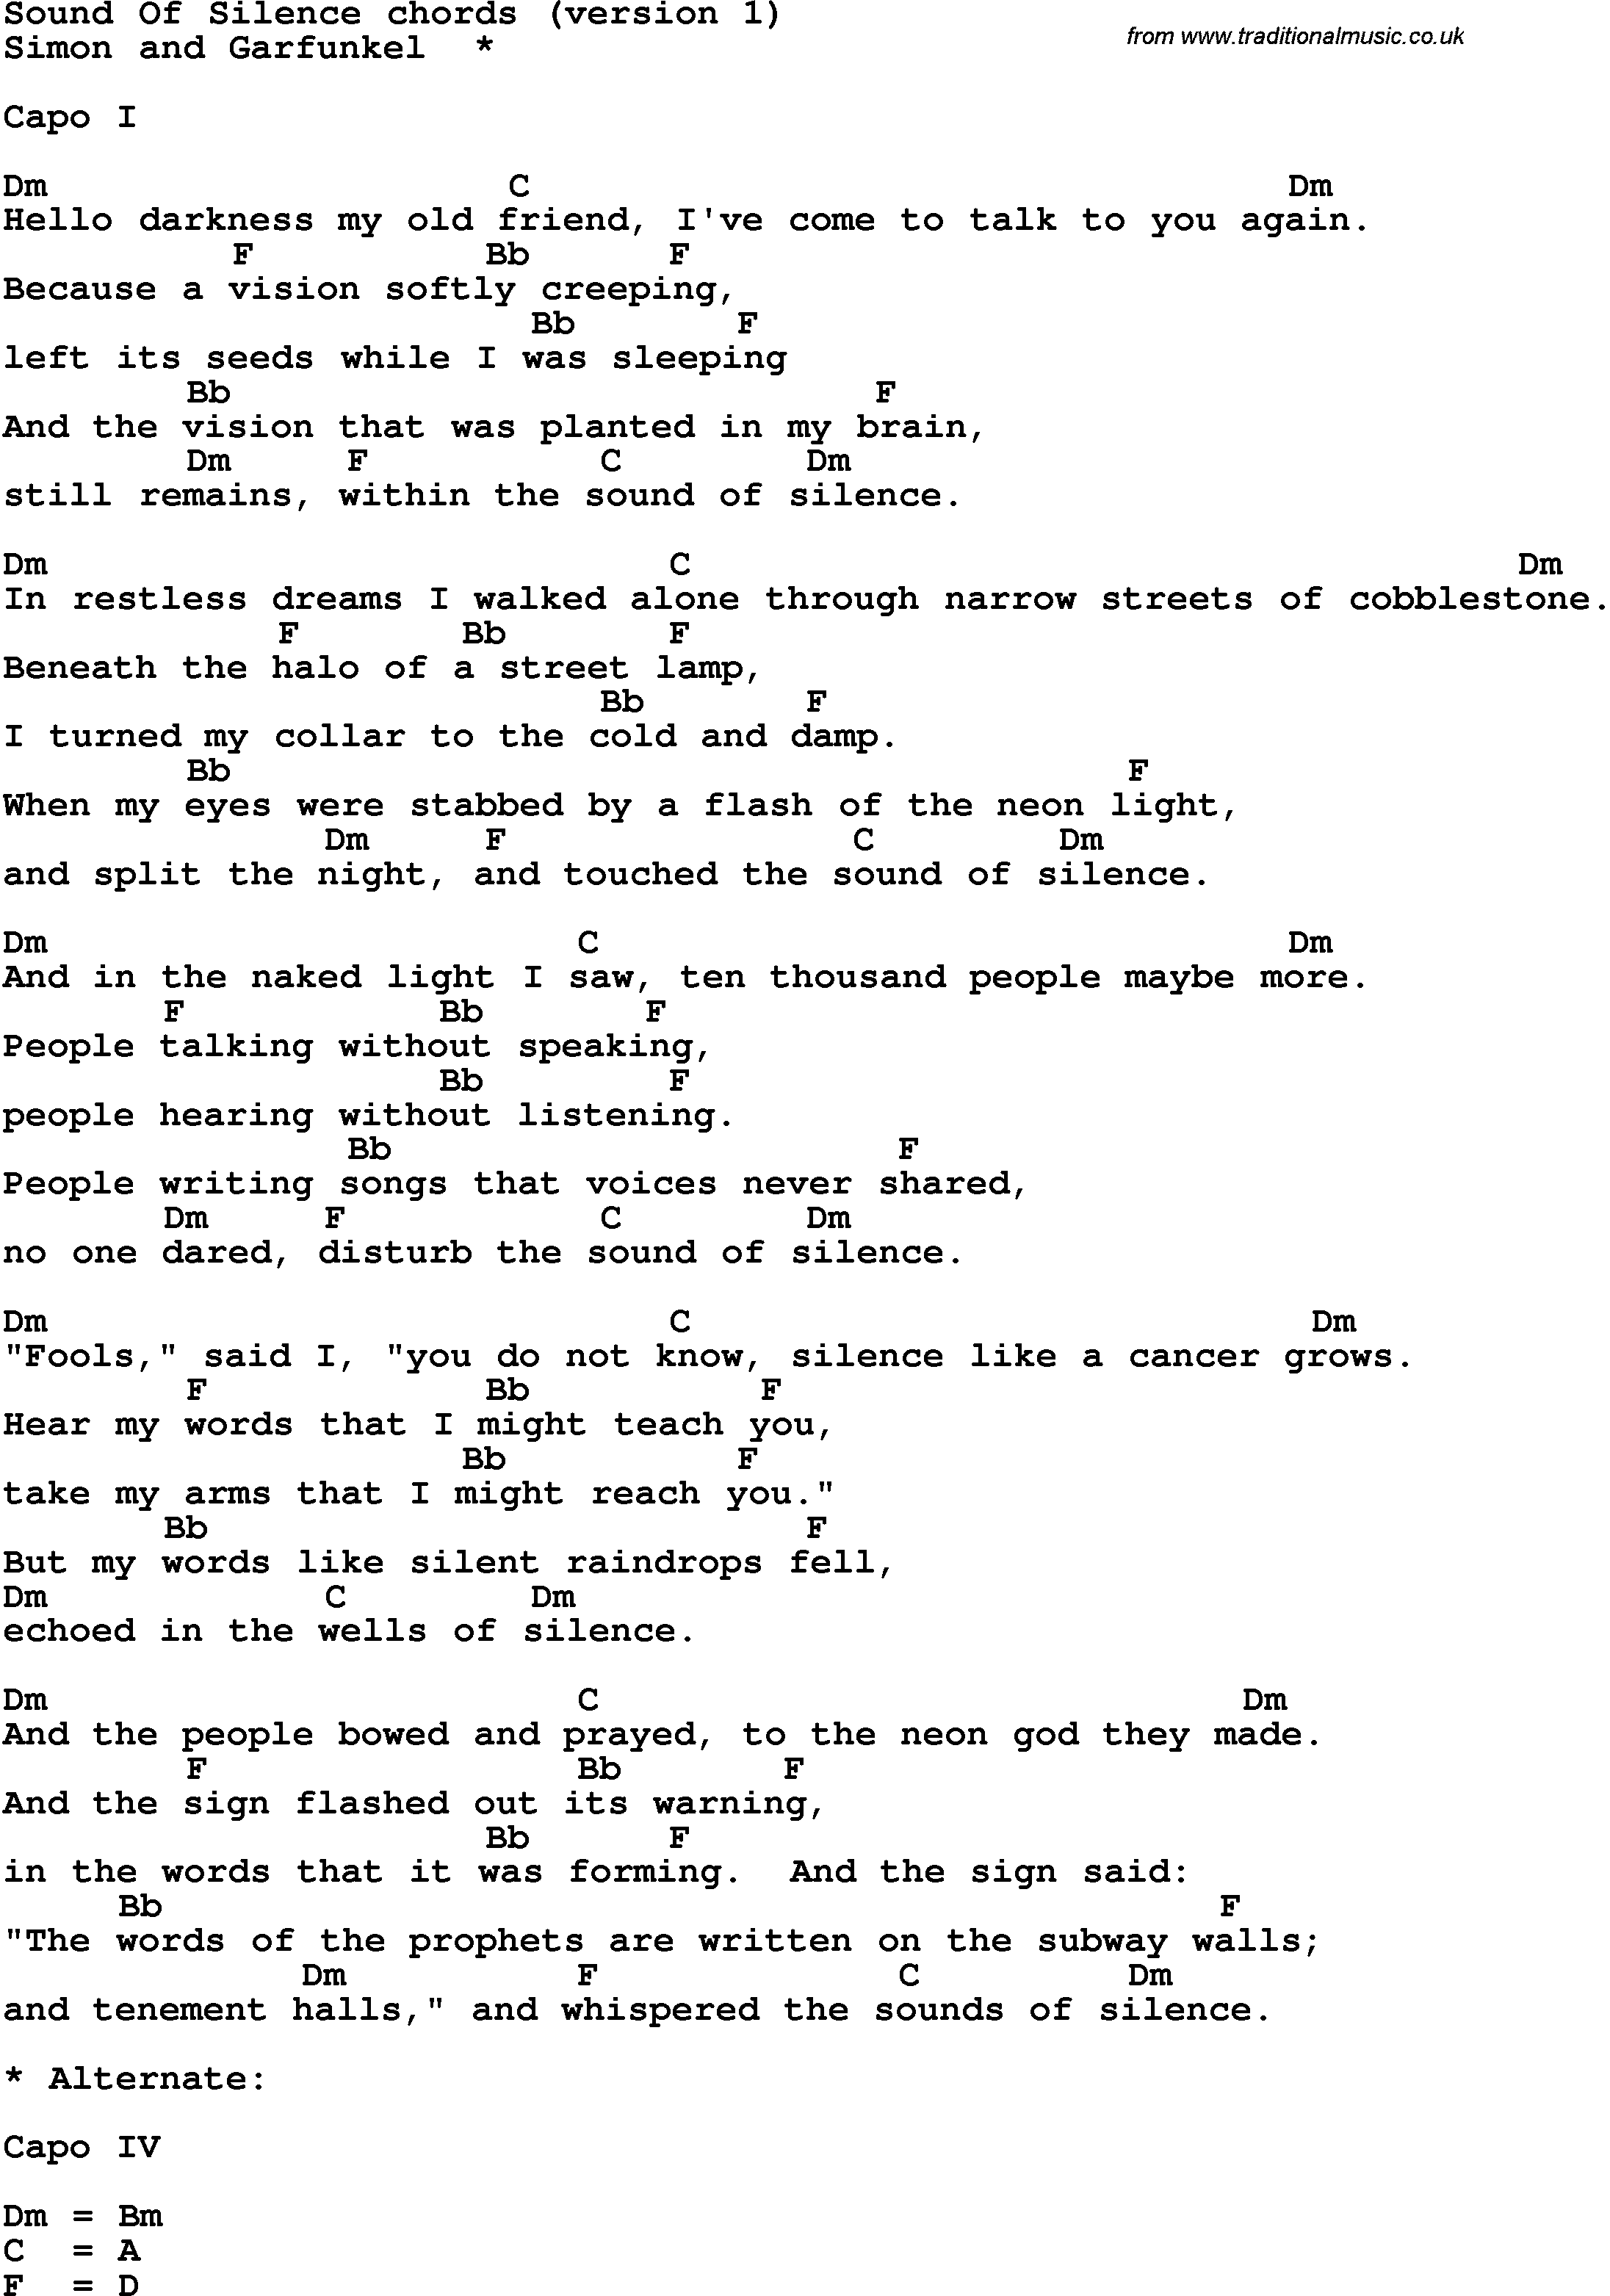 Song lyrics with guitar chords for sound of silence inspire me song lyrics with guitar chords for sound of silence hexwebz Gallery